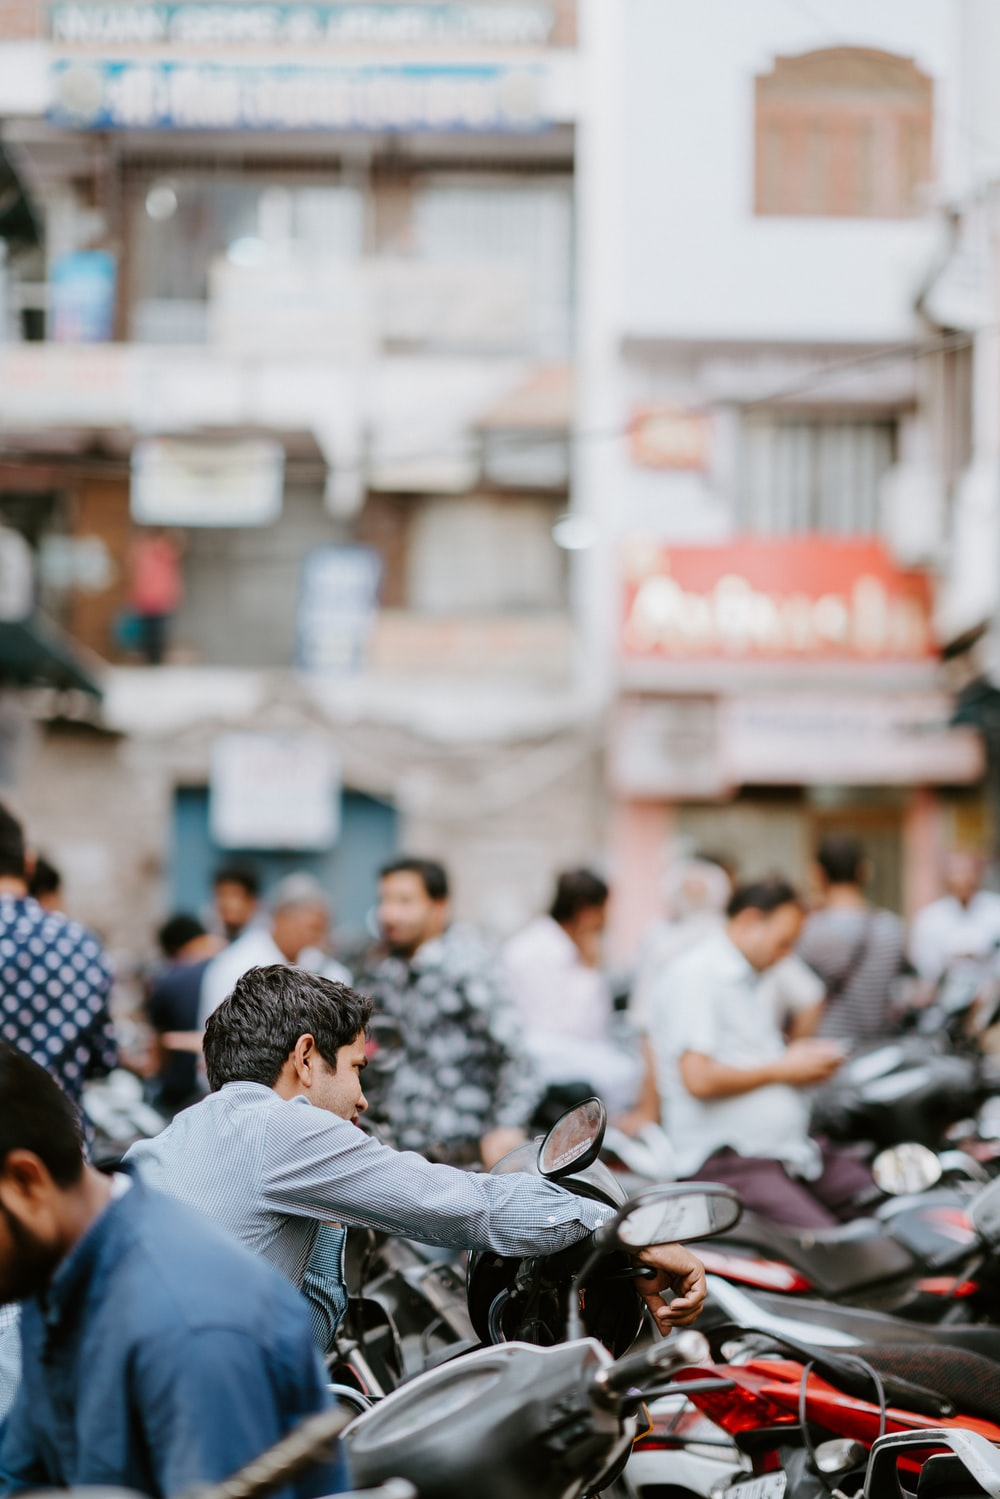 selective focus photo of man riding motorcycle